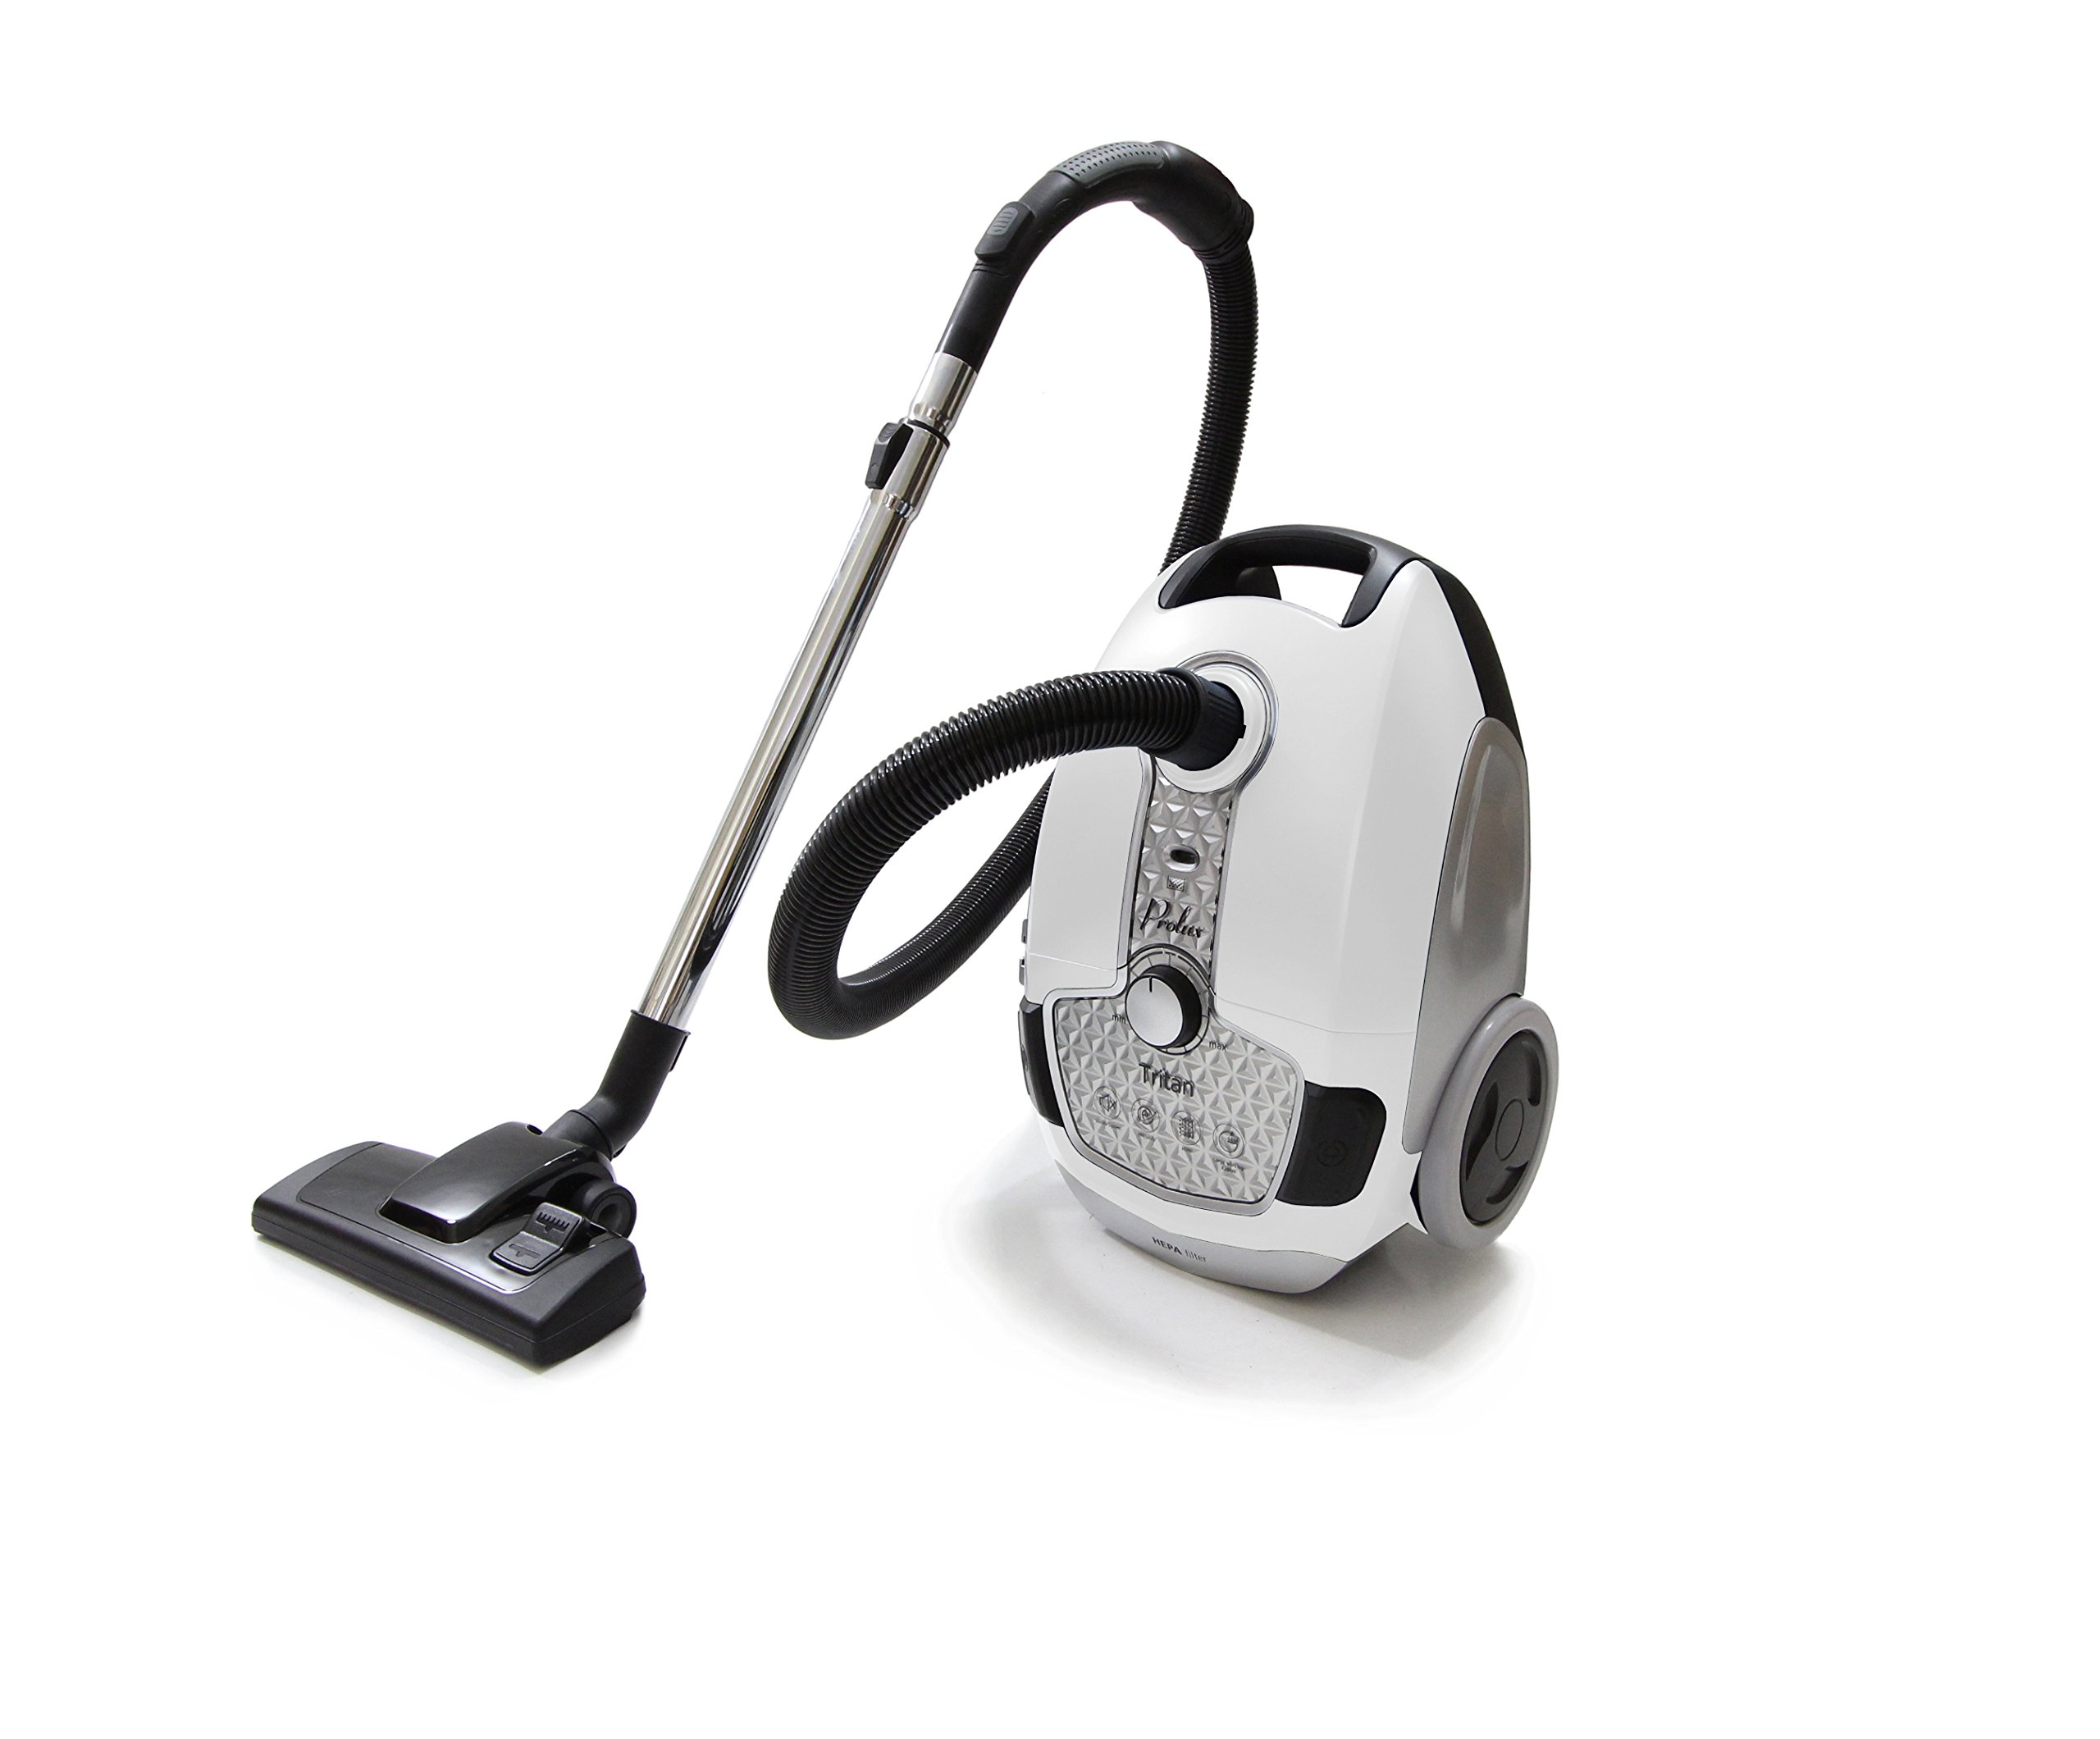 Prolux Tritan Canister Vacuum HEPA Sealed Hard Floor Vacuum With Powerful 12 Amp Motor by Prolux